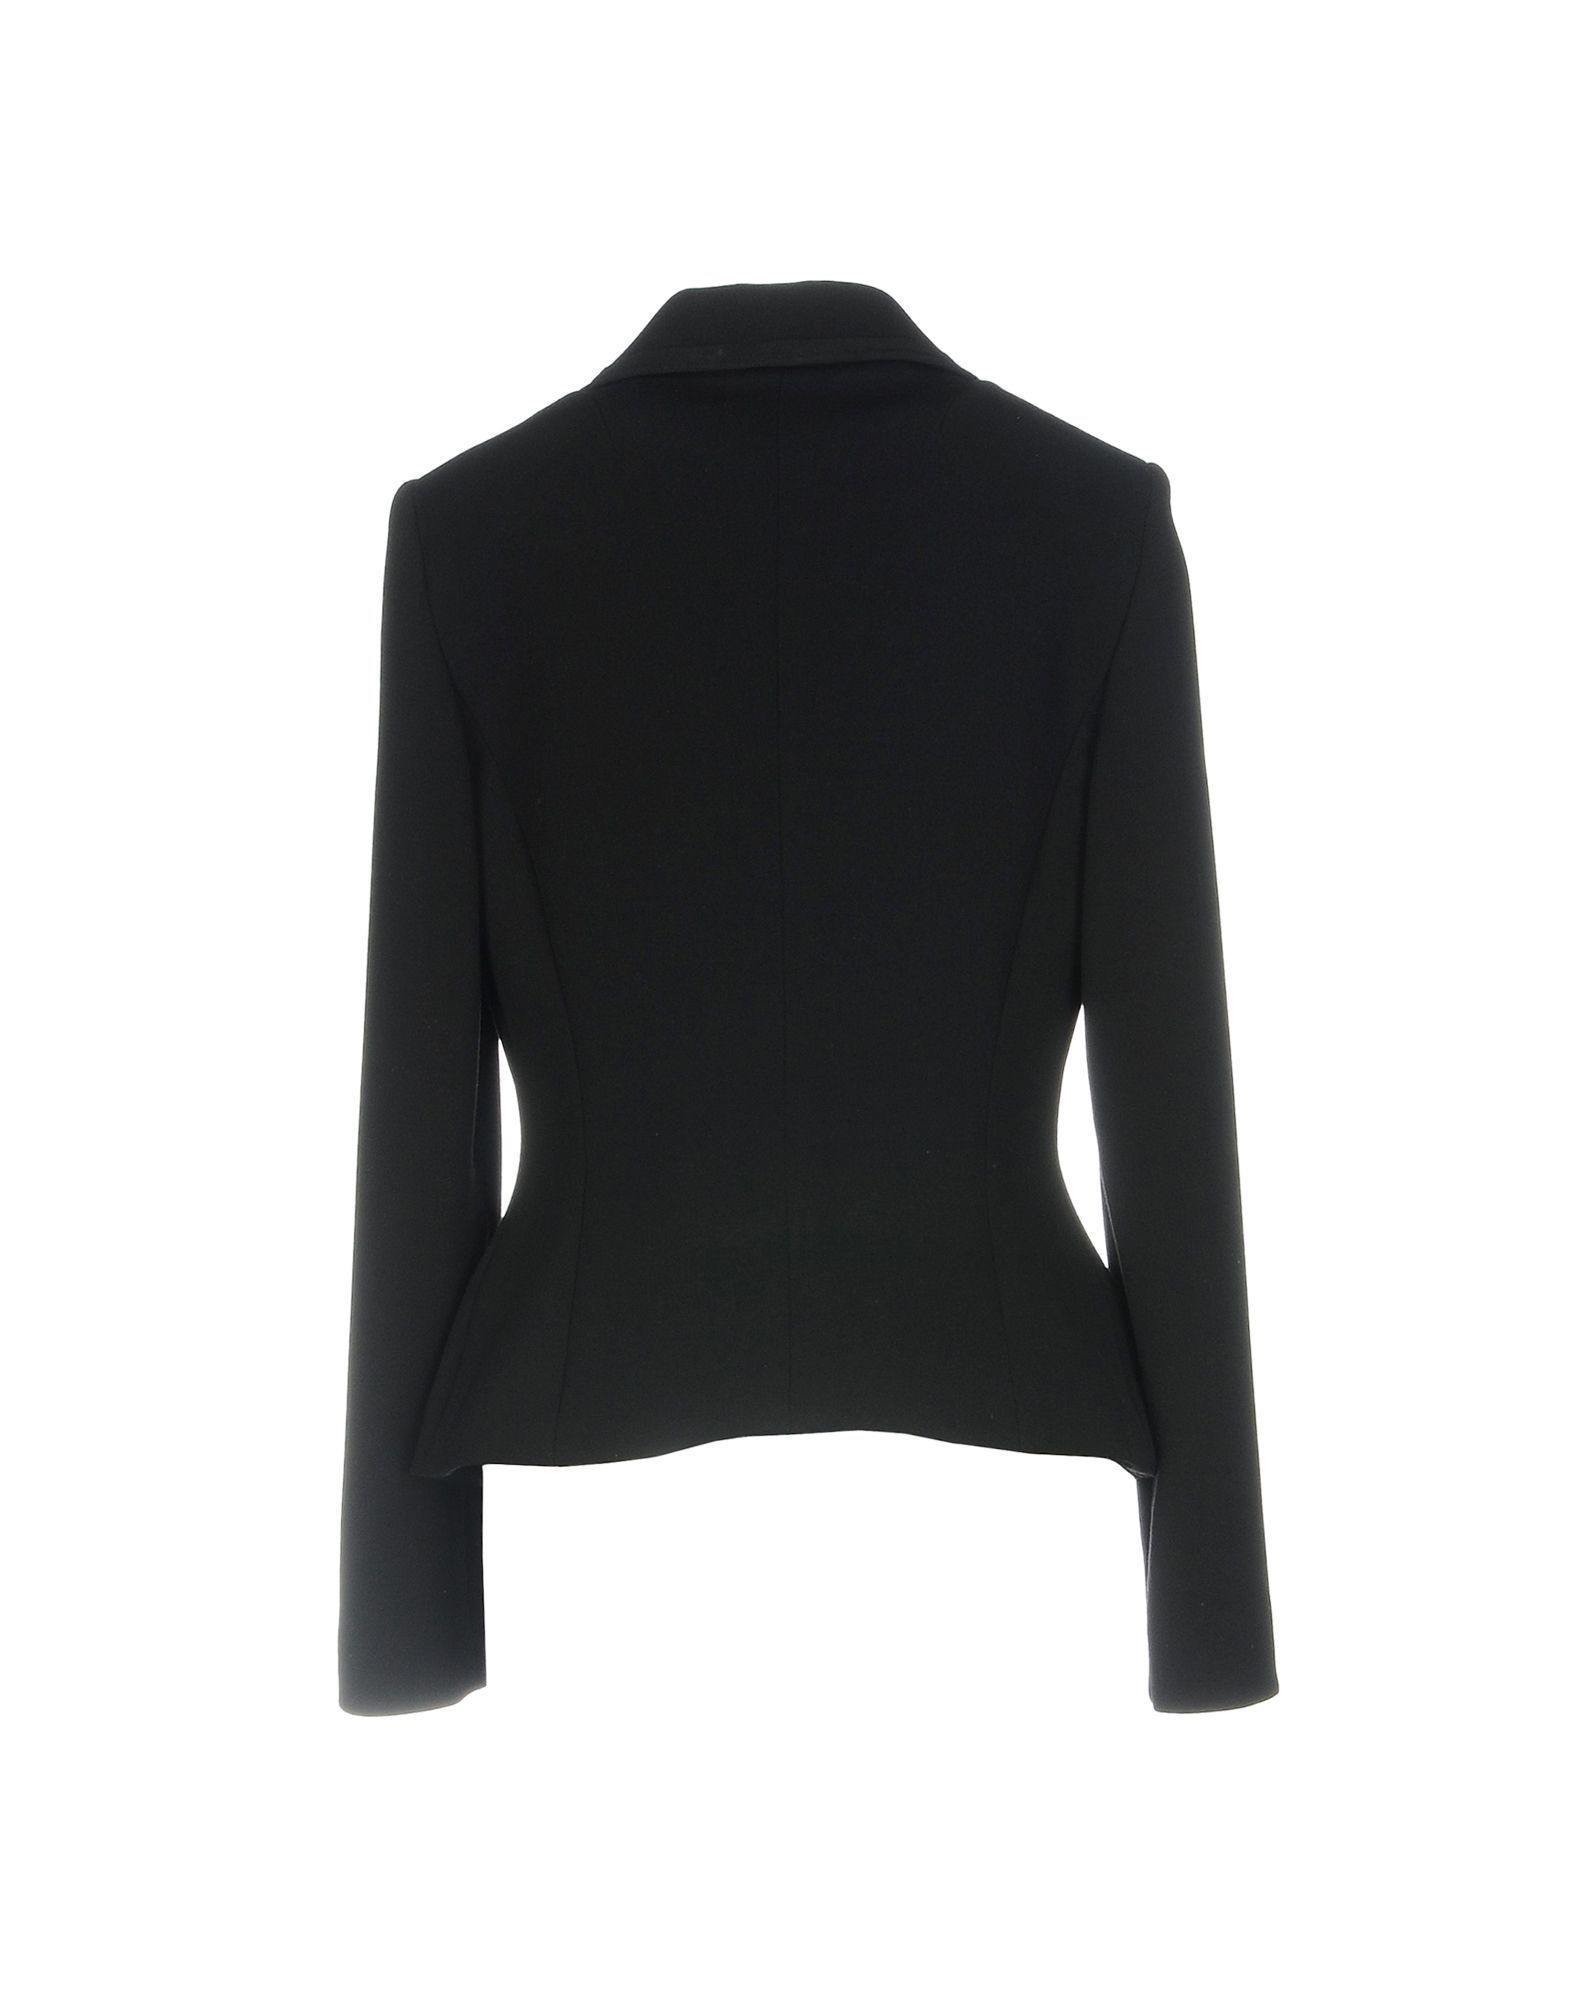 Dolce & Gabbana Black Wool Single Breasted Jacket